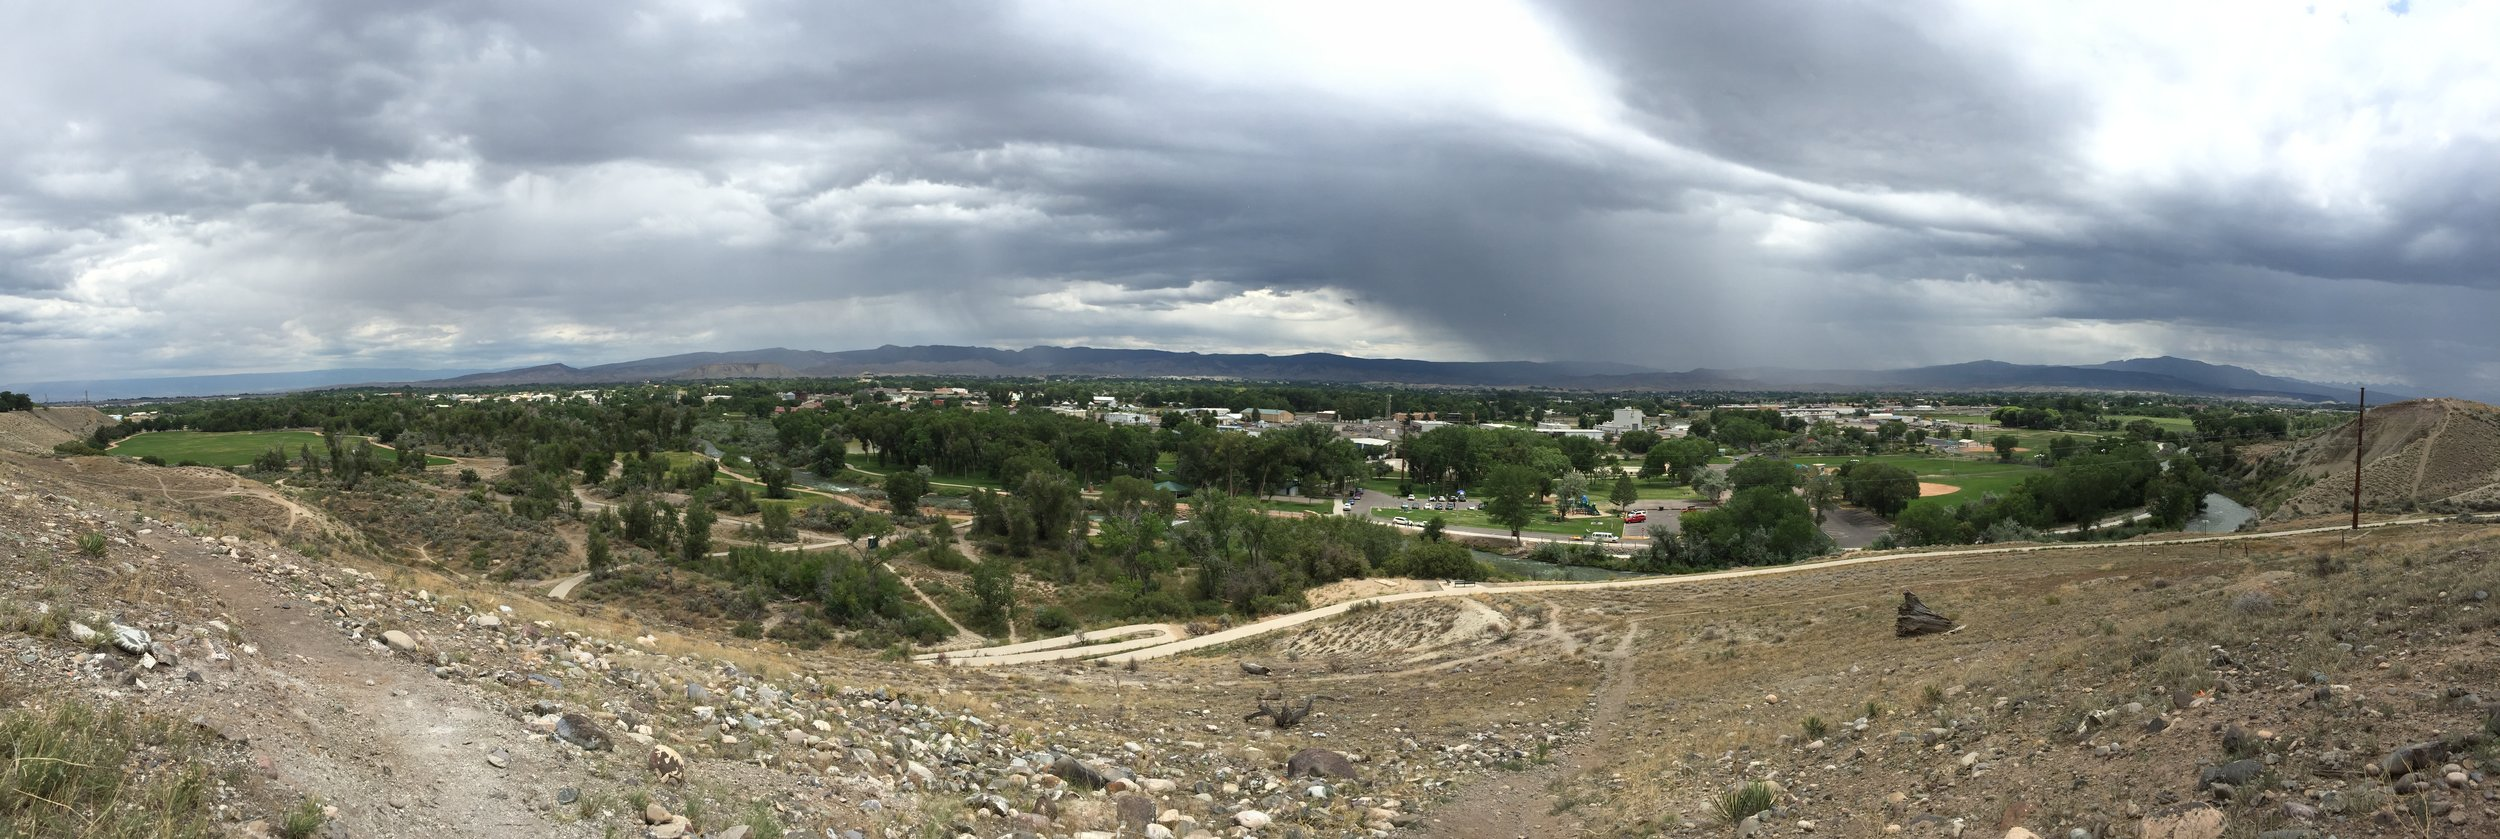 From the top of the hill overlooking Montrose.